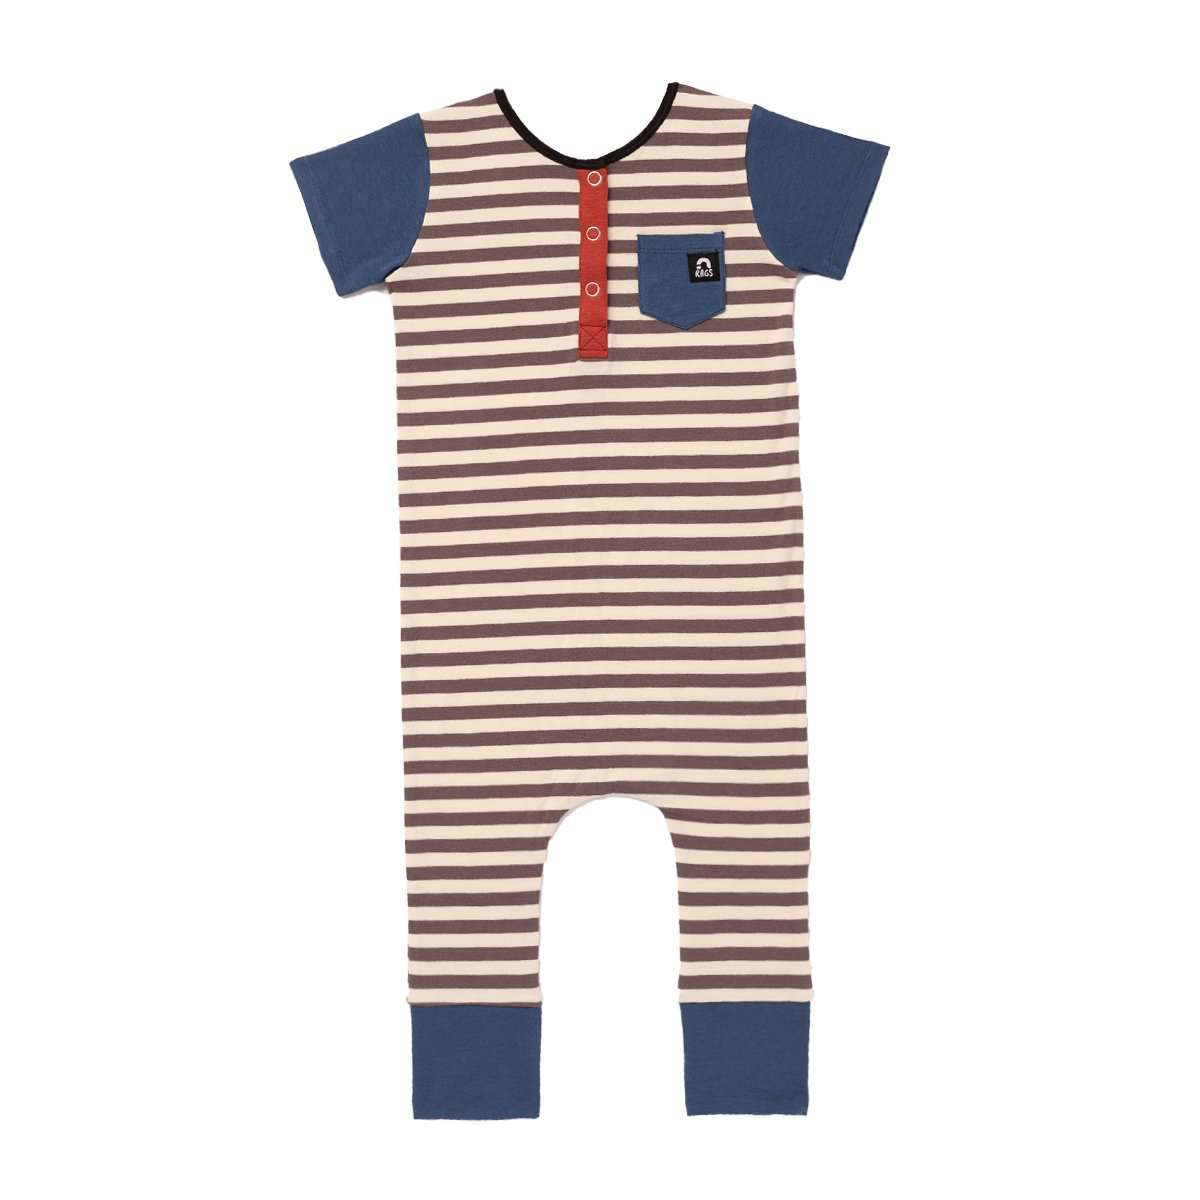 Image of Short Sleeve Henley Rag - 'Stripes' - Sepia and Eggnog Stripe